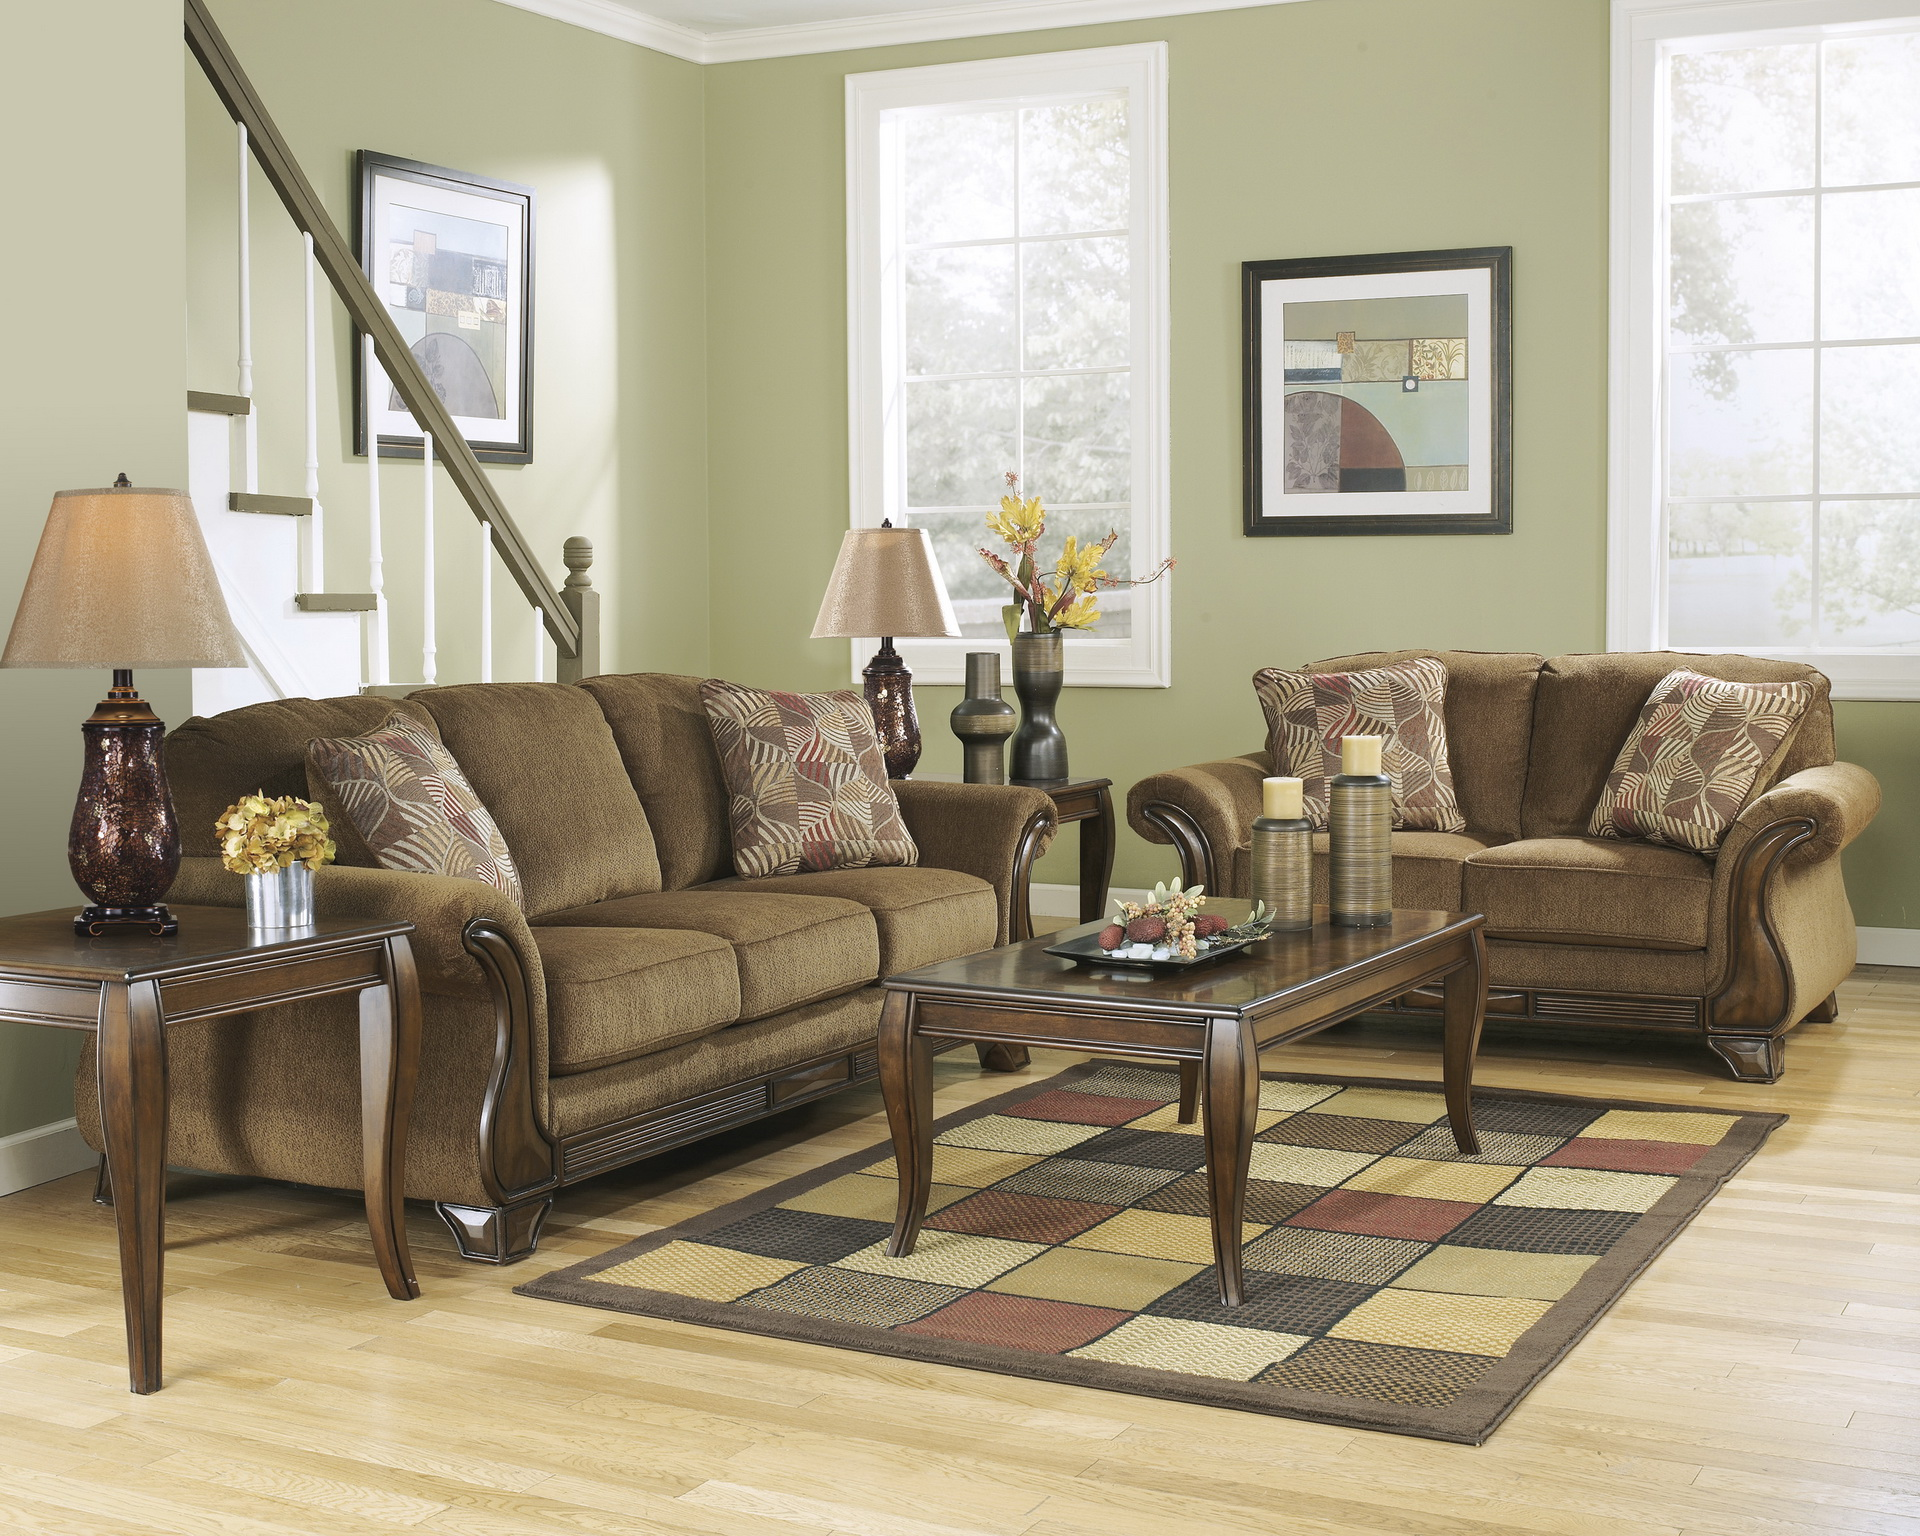 living room set ashley furniture 25 facts to about furniture living room sets 21261